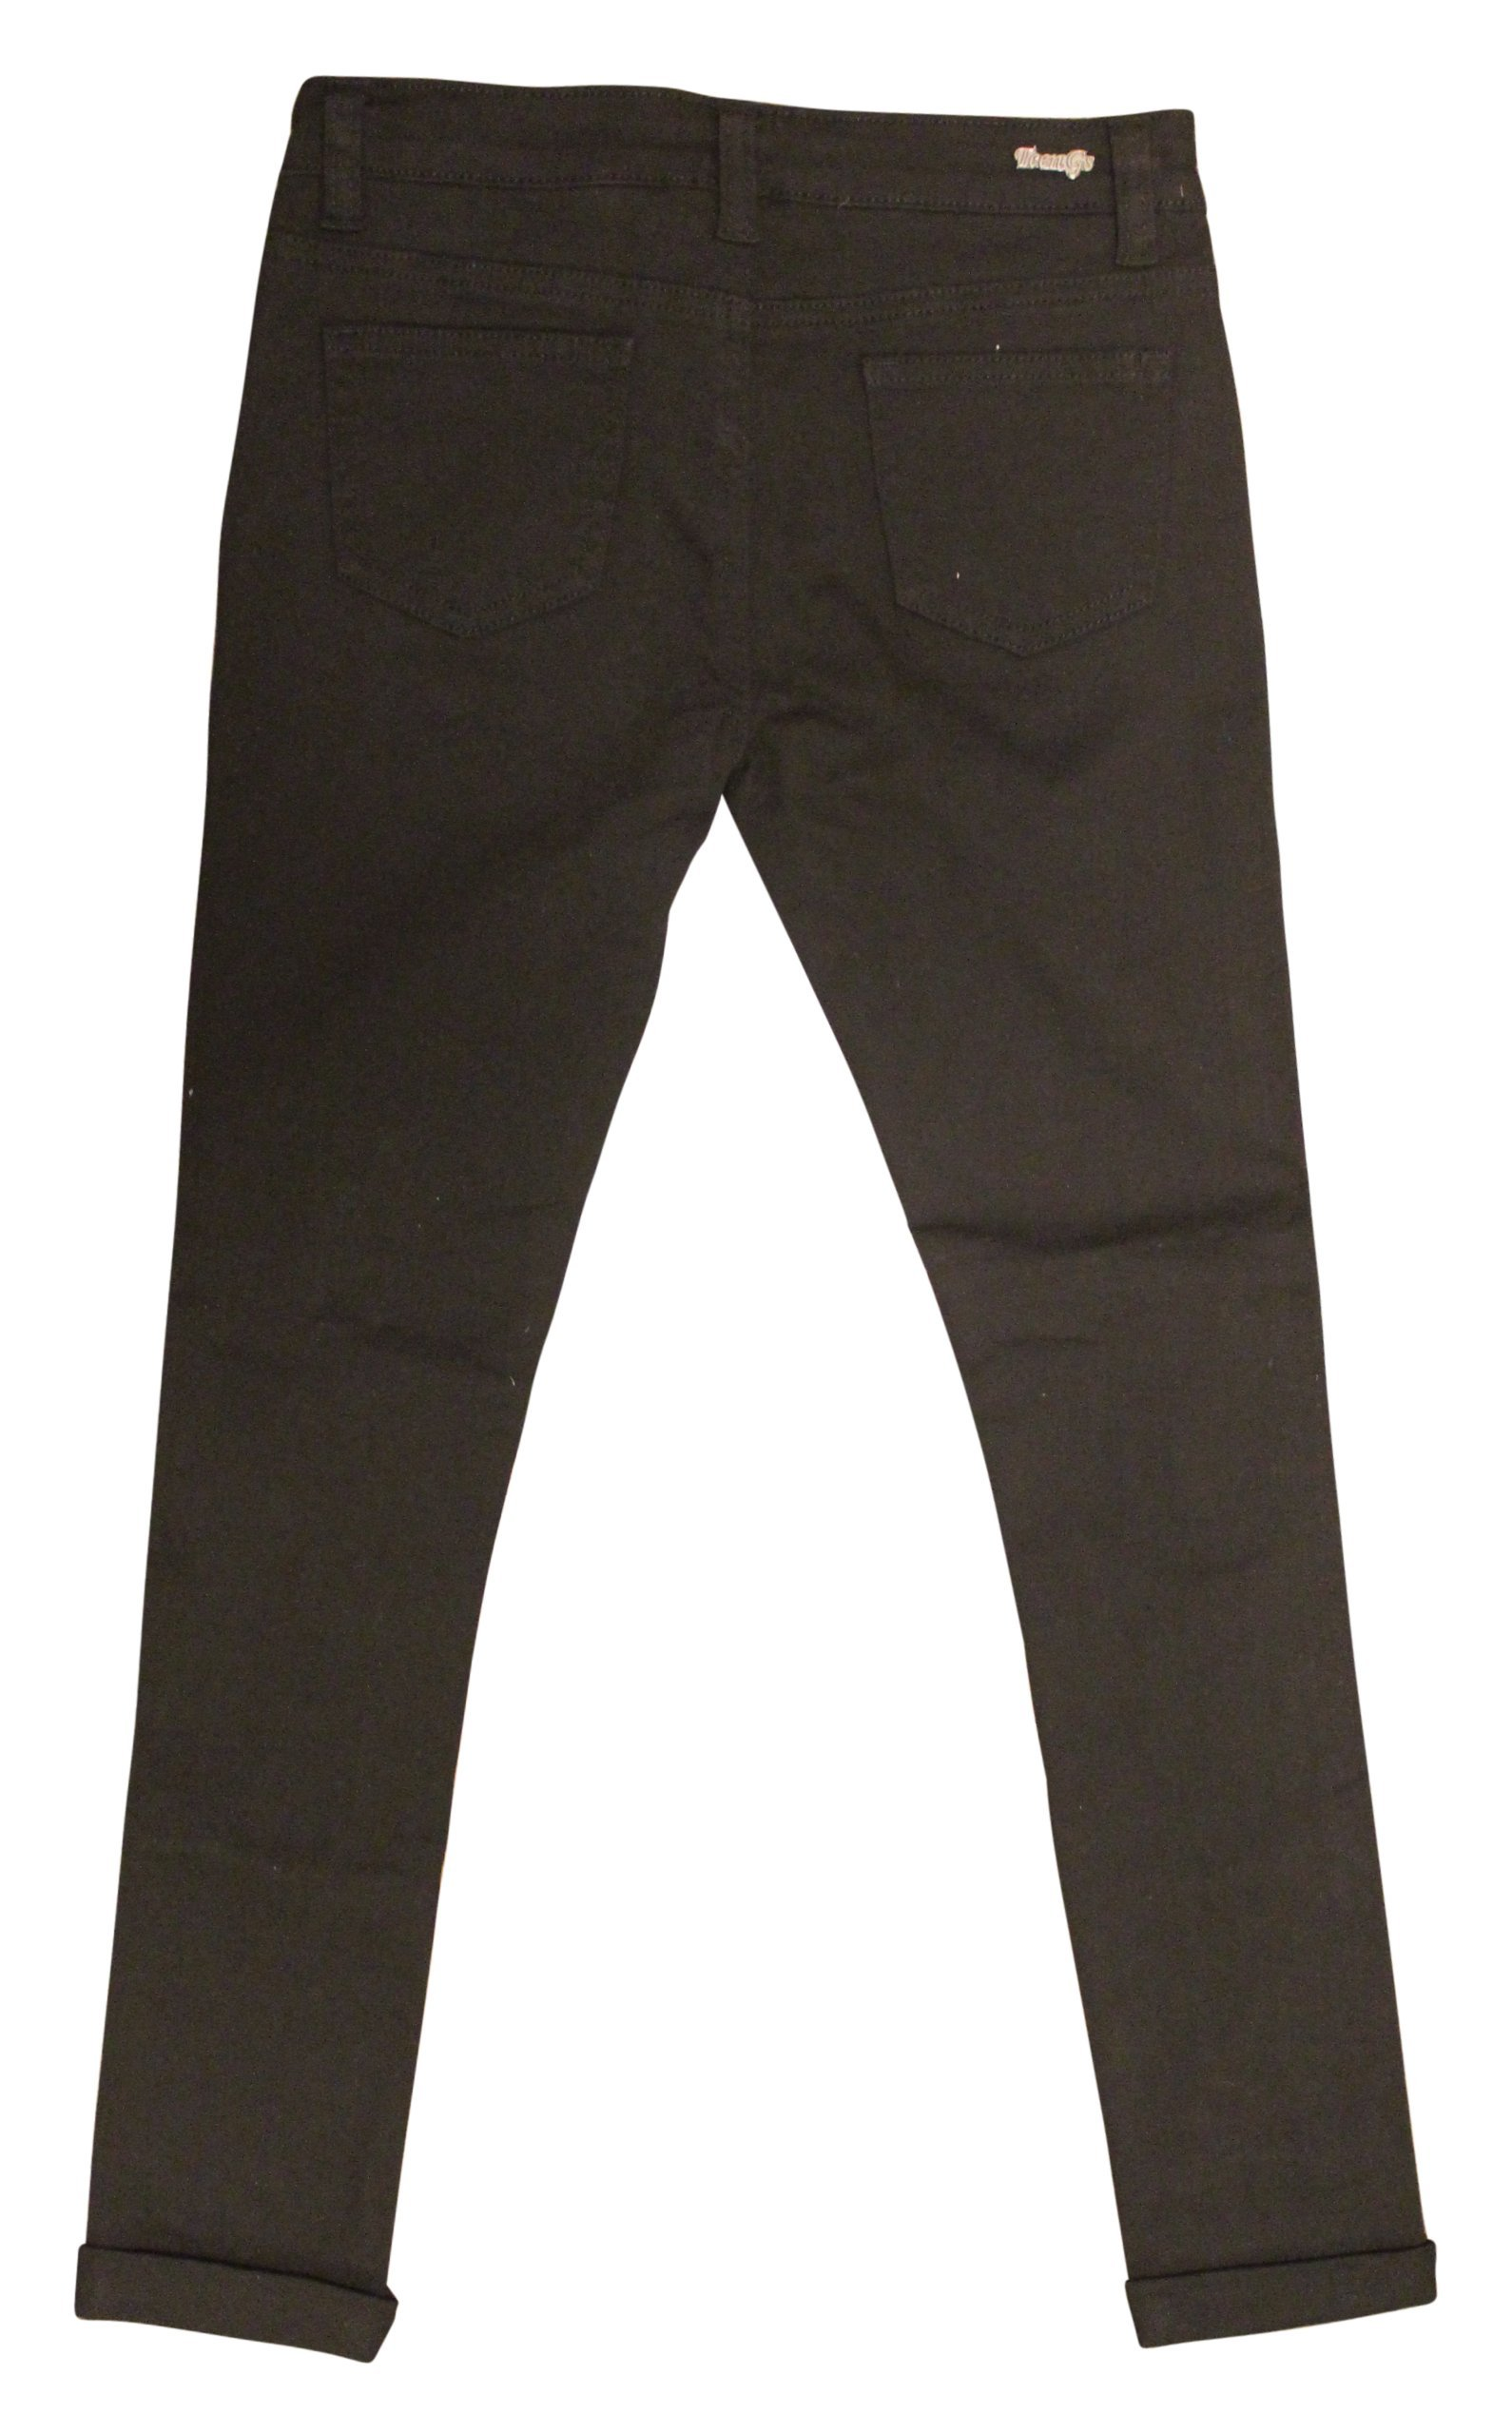 Teen G's Jeans and Twill for Girls by Skinny Jeans for Girls with Ripped Denim and Distressed Stretch Fabric Slim Fit Pants,kp33 (16, Black) by Teen G's (Image #2)